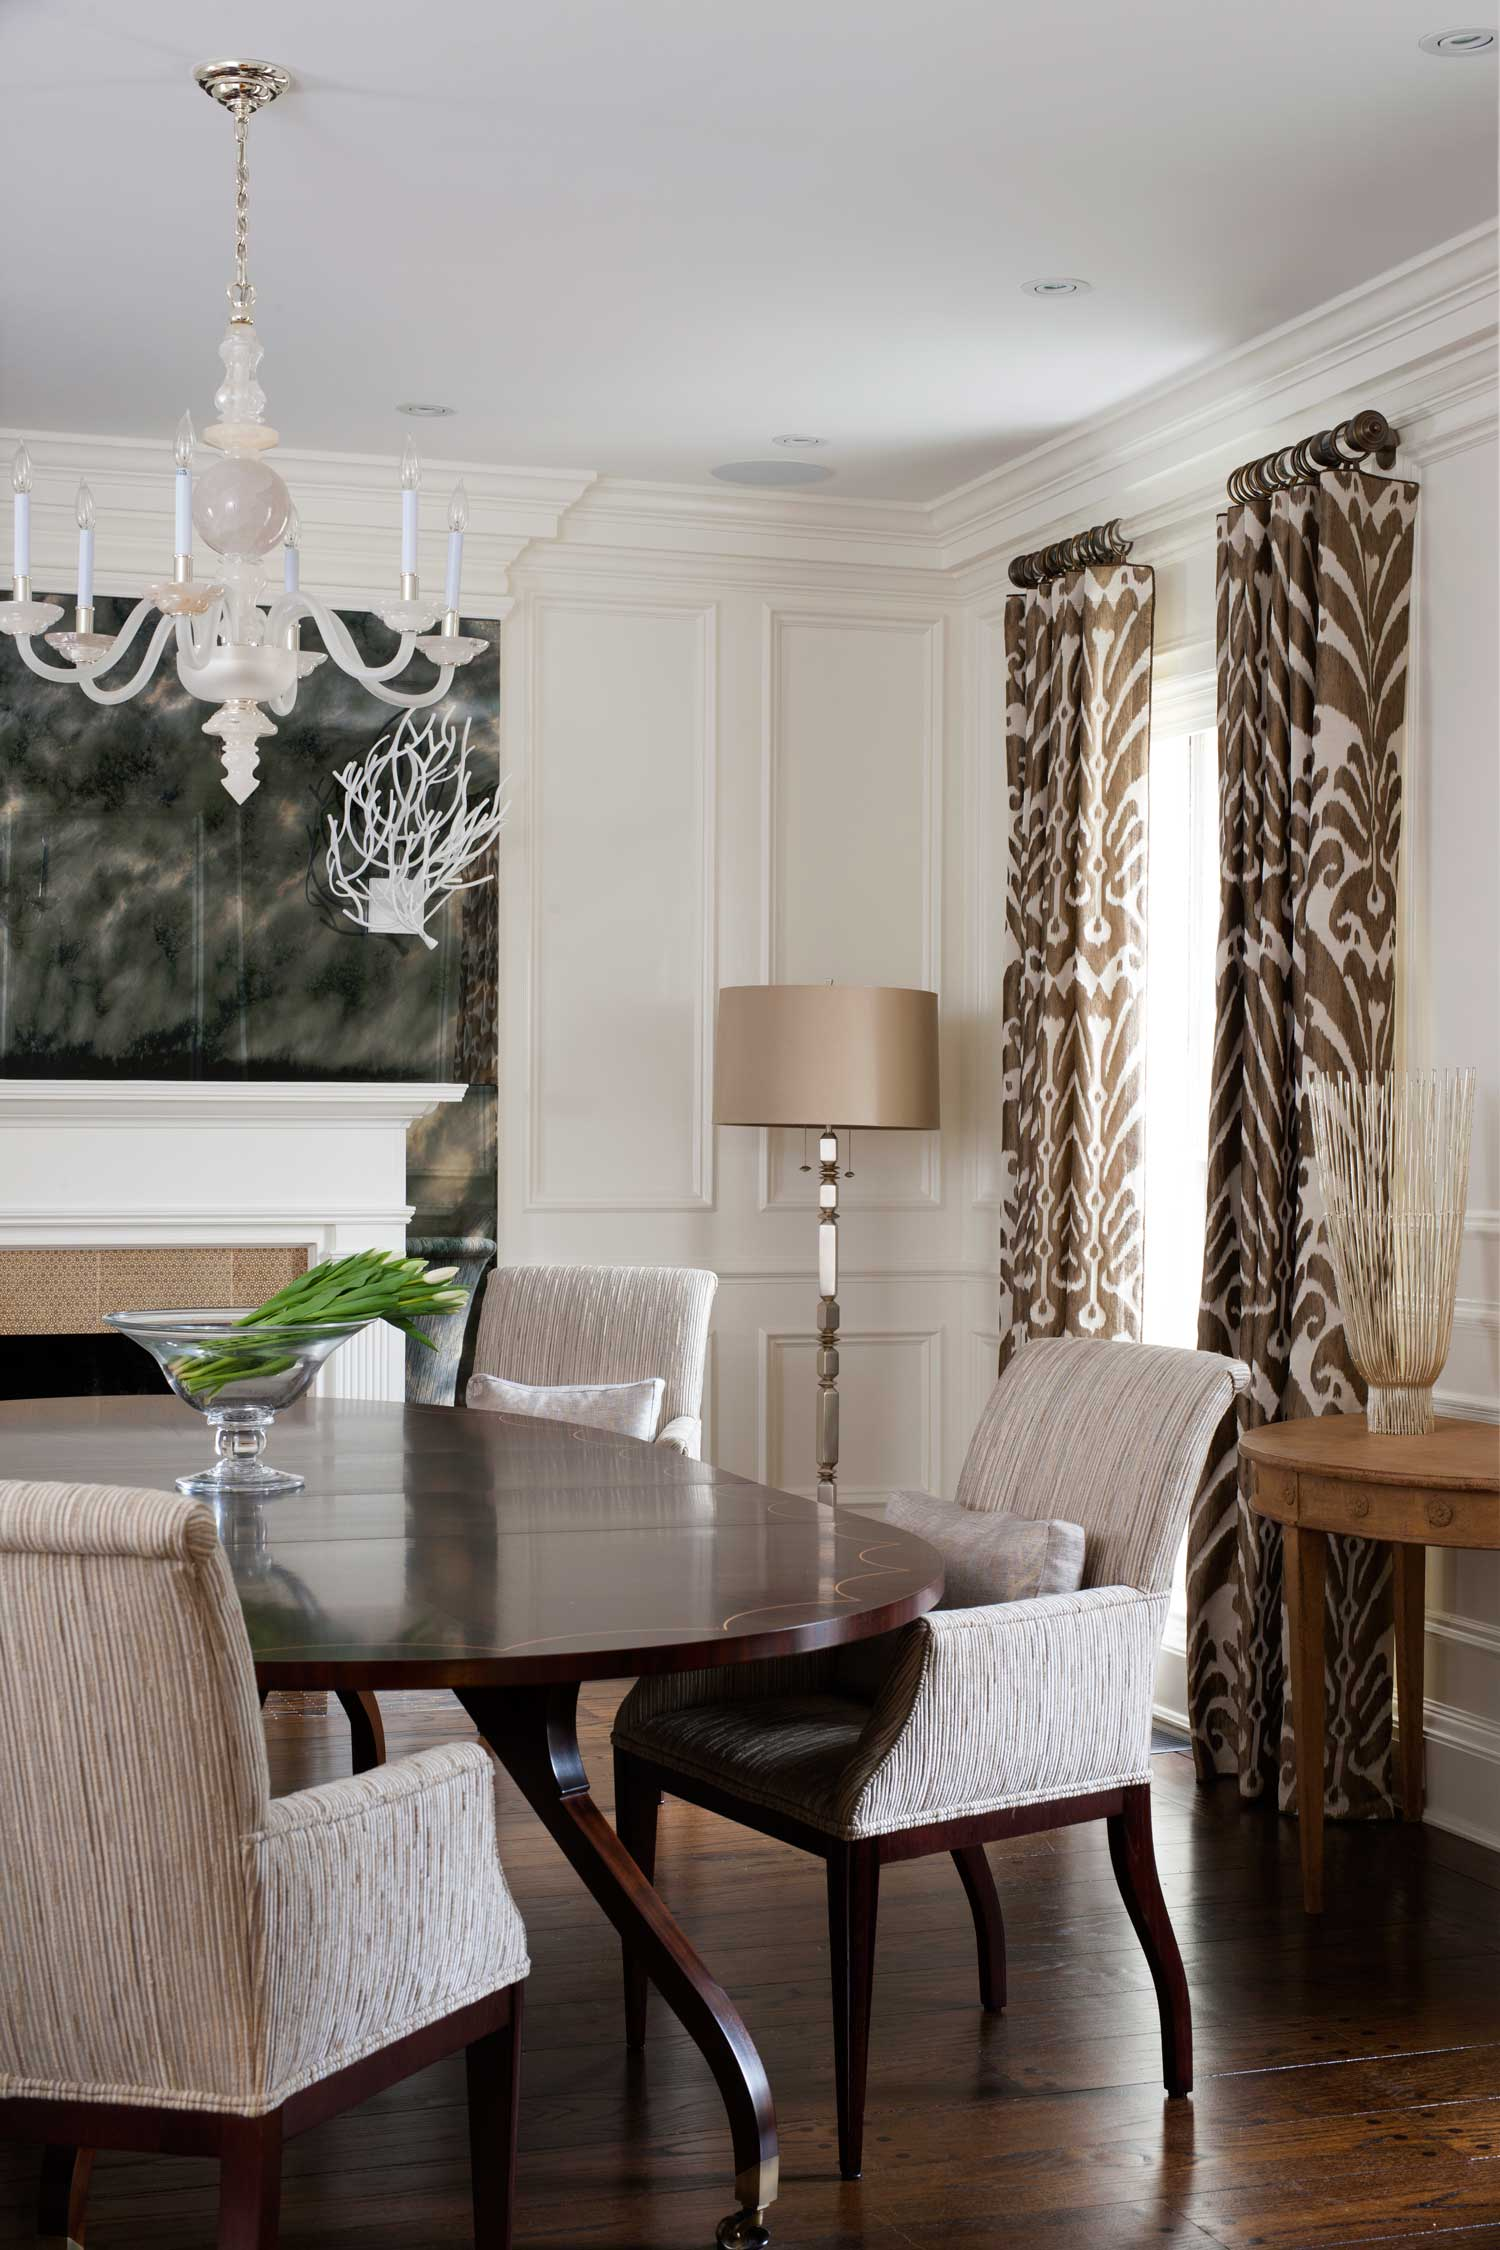 Classic modern dining room fireplace jim thompson ikat fabric drapes modern light fixture interior design Bethesda MD Ella Scott Design